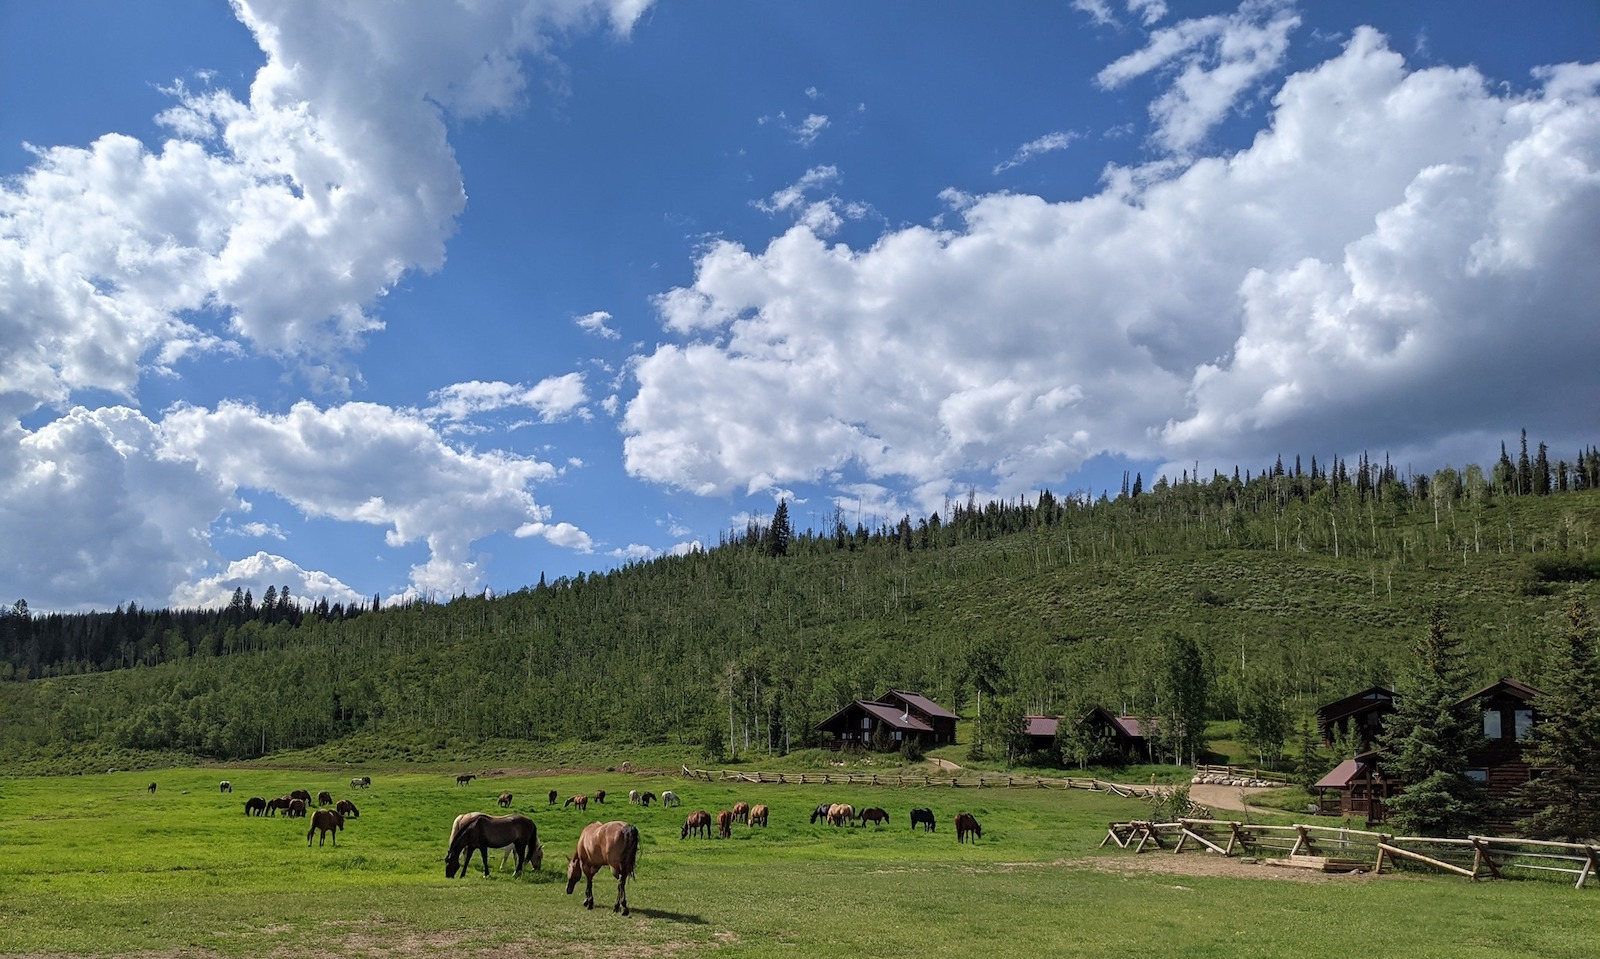 Image of horses on the property at Vista Verde Ranch in Clark, Colorado